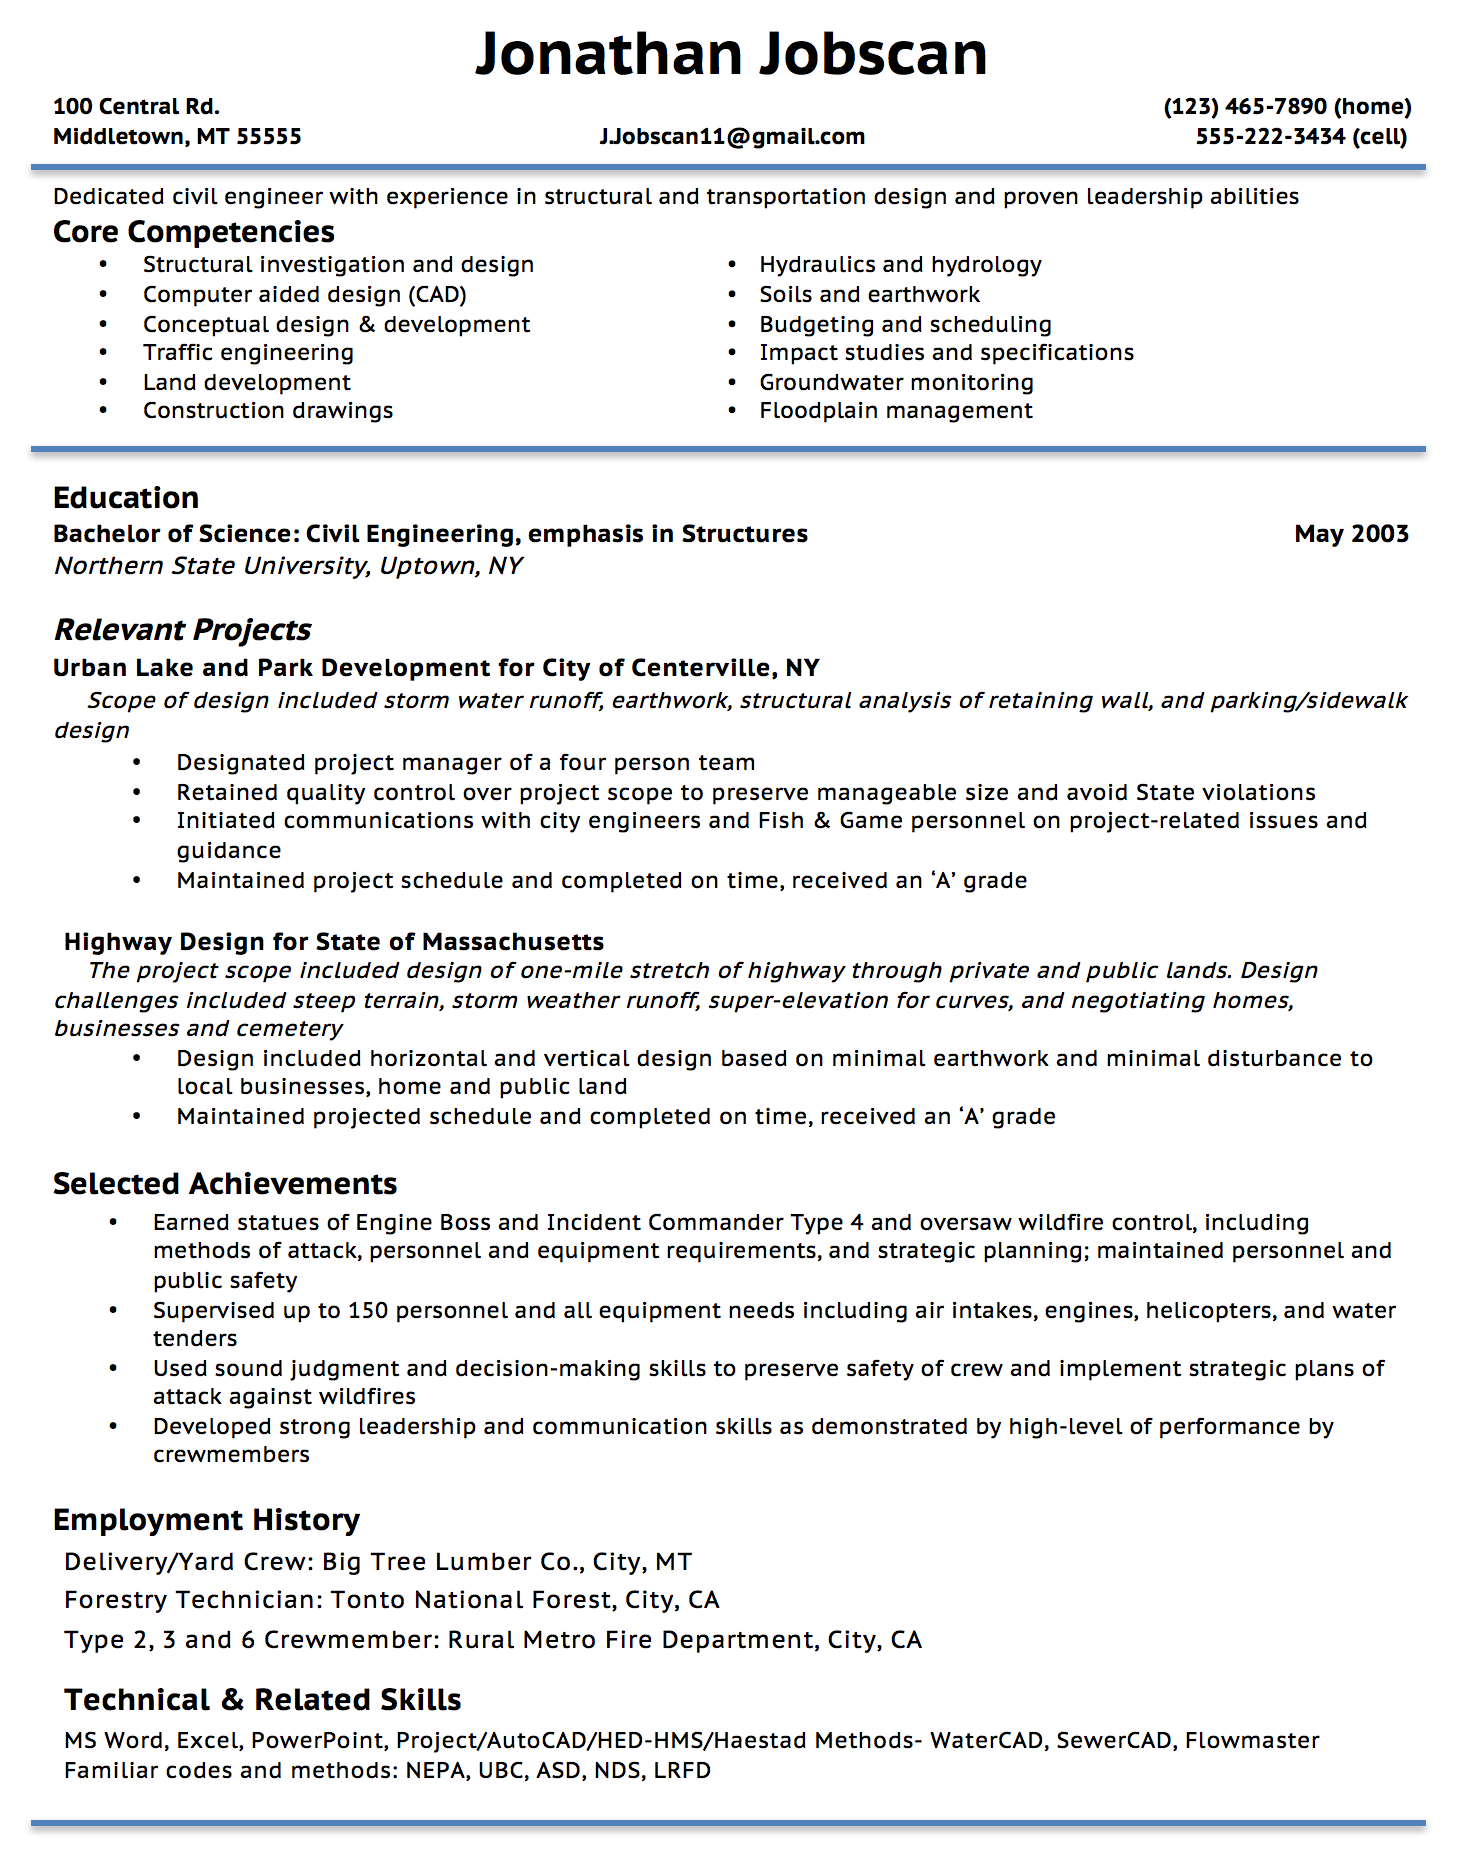 Opposenewapstandardsus  Gorgeous Resume Writing Guide  Jobscan With Hot Example Of A Functional Resume Format With Beauteous Resum Template Also Resume Google In Addition Examples Of Simple Resumes And Entry Level Paralegal Resume As Well As Executive Resume Format Additionally Resume Helper Free From Jobscanco With Opposenewapstandardsus  Hot Resume Writing Guide  Jobscan With Beauteous Example Of A Functional Resume Format And Gorgeous Resum Template Also Resume Google In Addition Examples Of Simple Resumes From Jobscanco